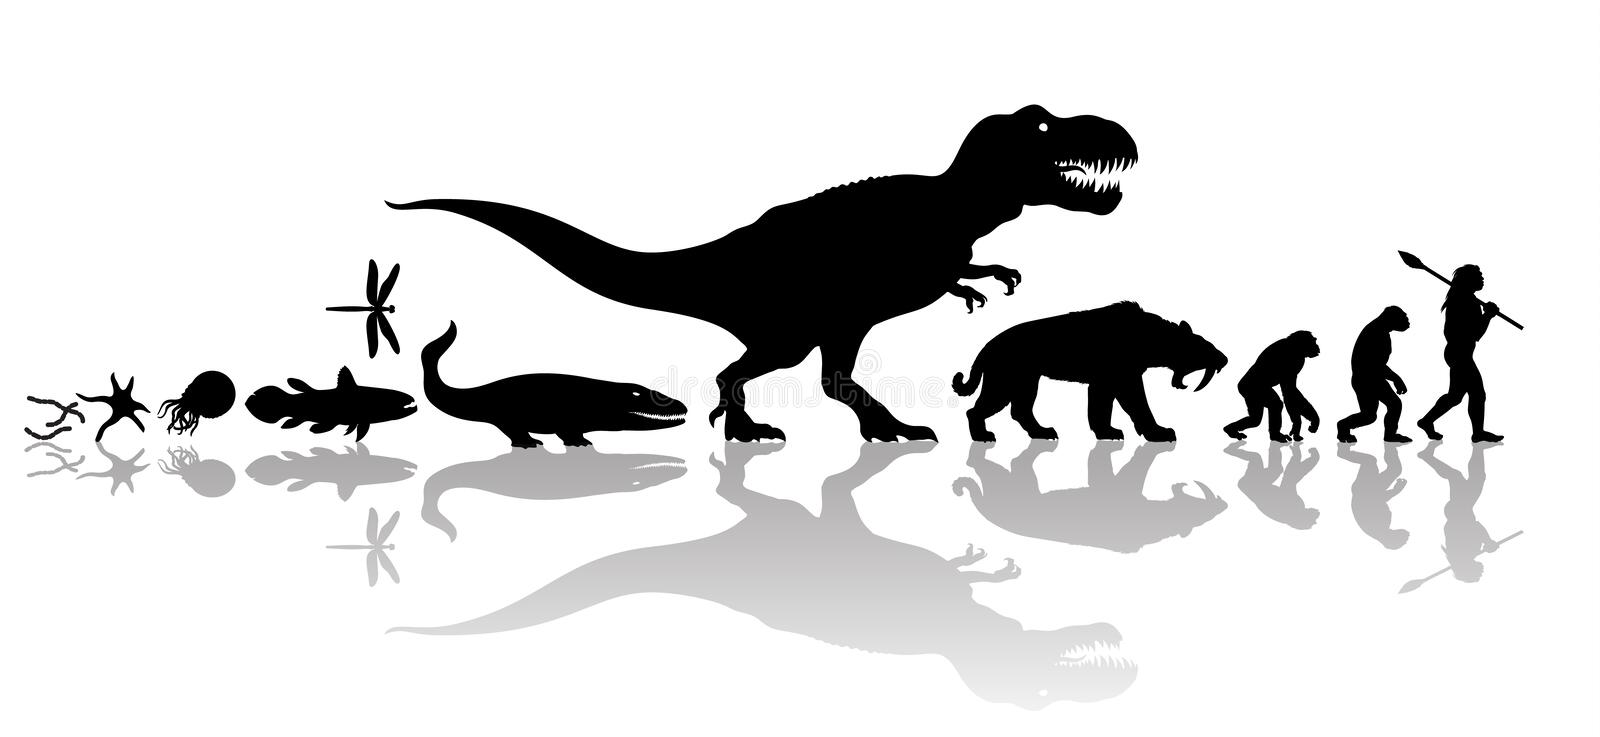 Evolution of life on Earth. Silhouette with transparent reflection isolated on white background. Vector history of life on Earth. Timeline of evolution from royalty free illustration